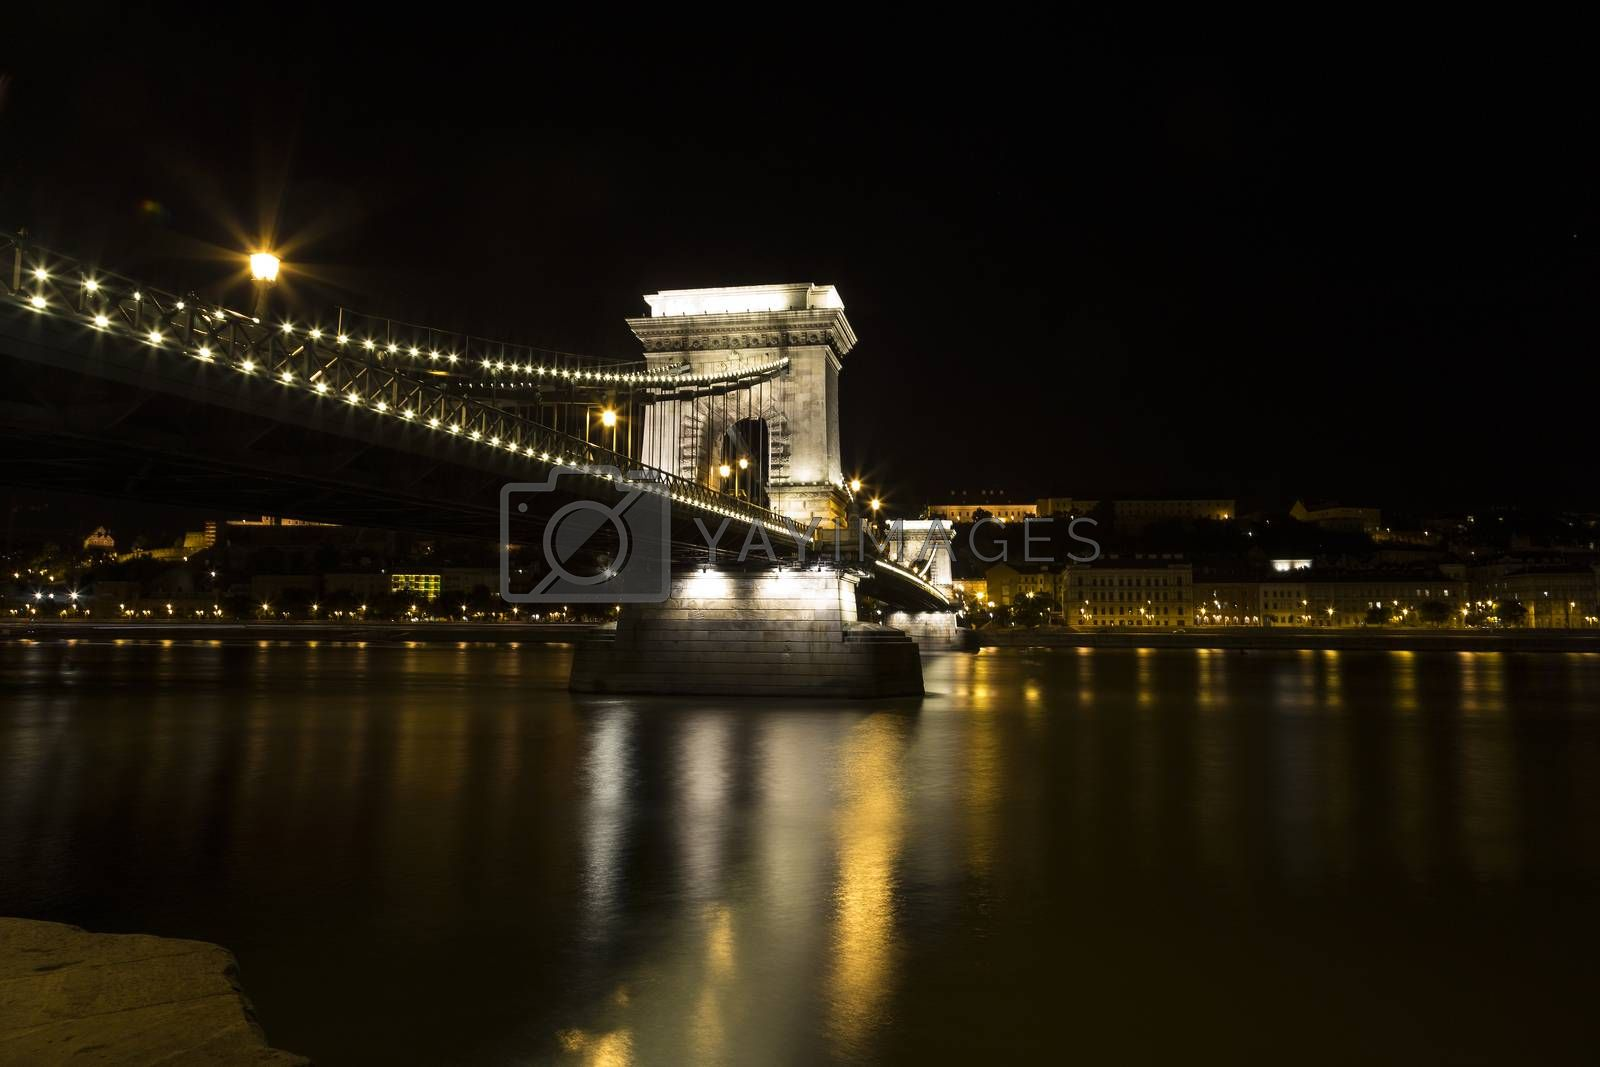 Royalty free image of Danube View in Budapest by paocasa